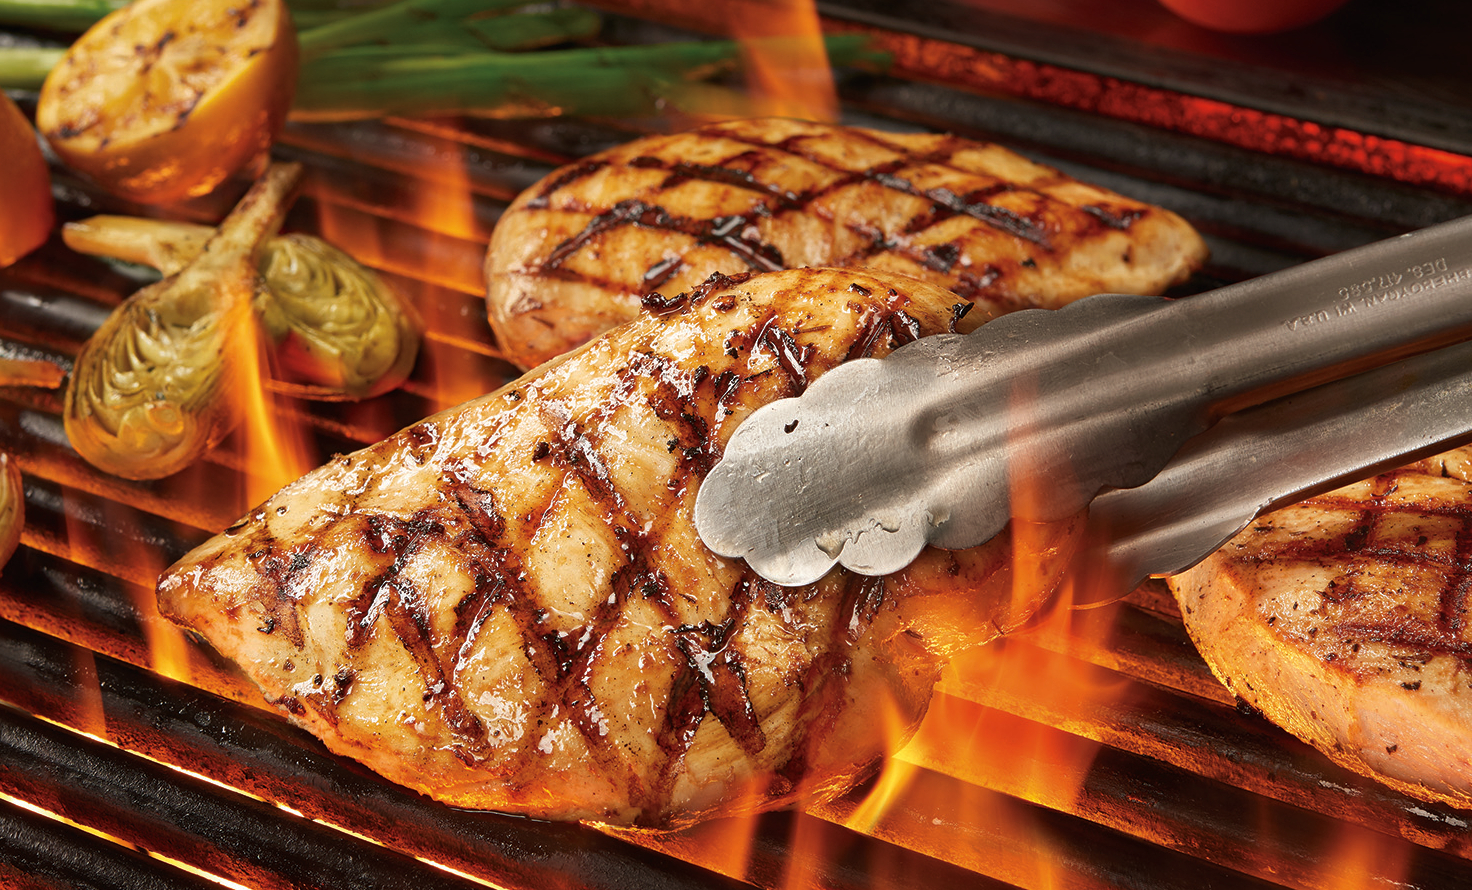 HARVESTLAND® Organic Grilled Chicken Breast with Grilled Lemon and Fire-Roasted Artichoke Hearts